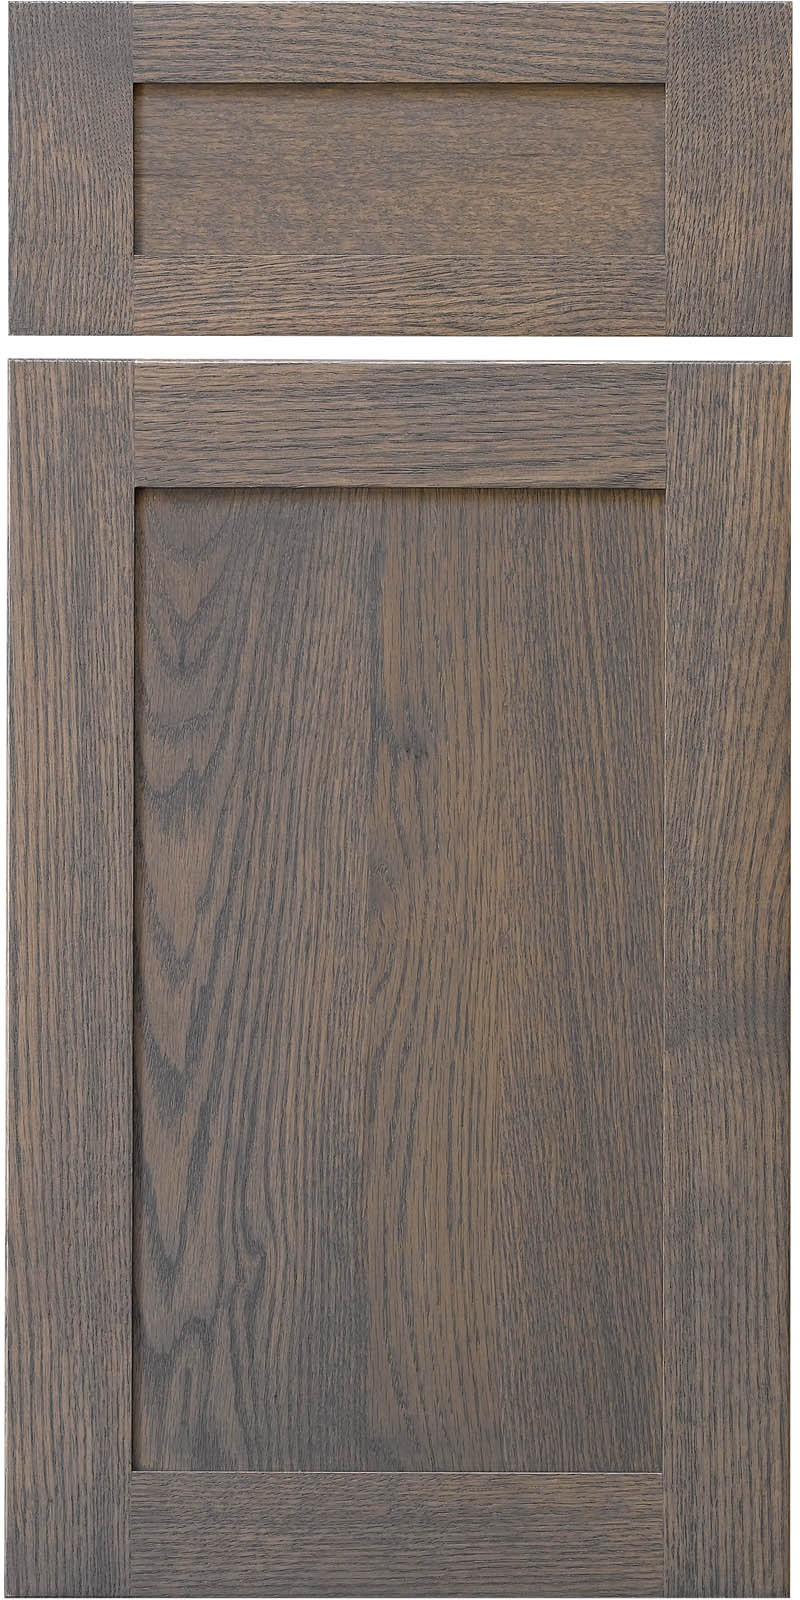 Amesbury Transitional Design Styles Cabinet Doors